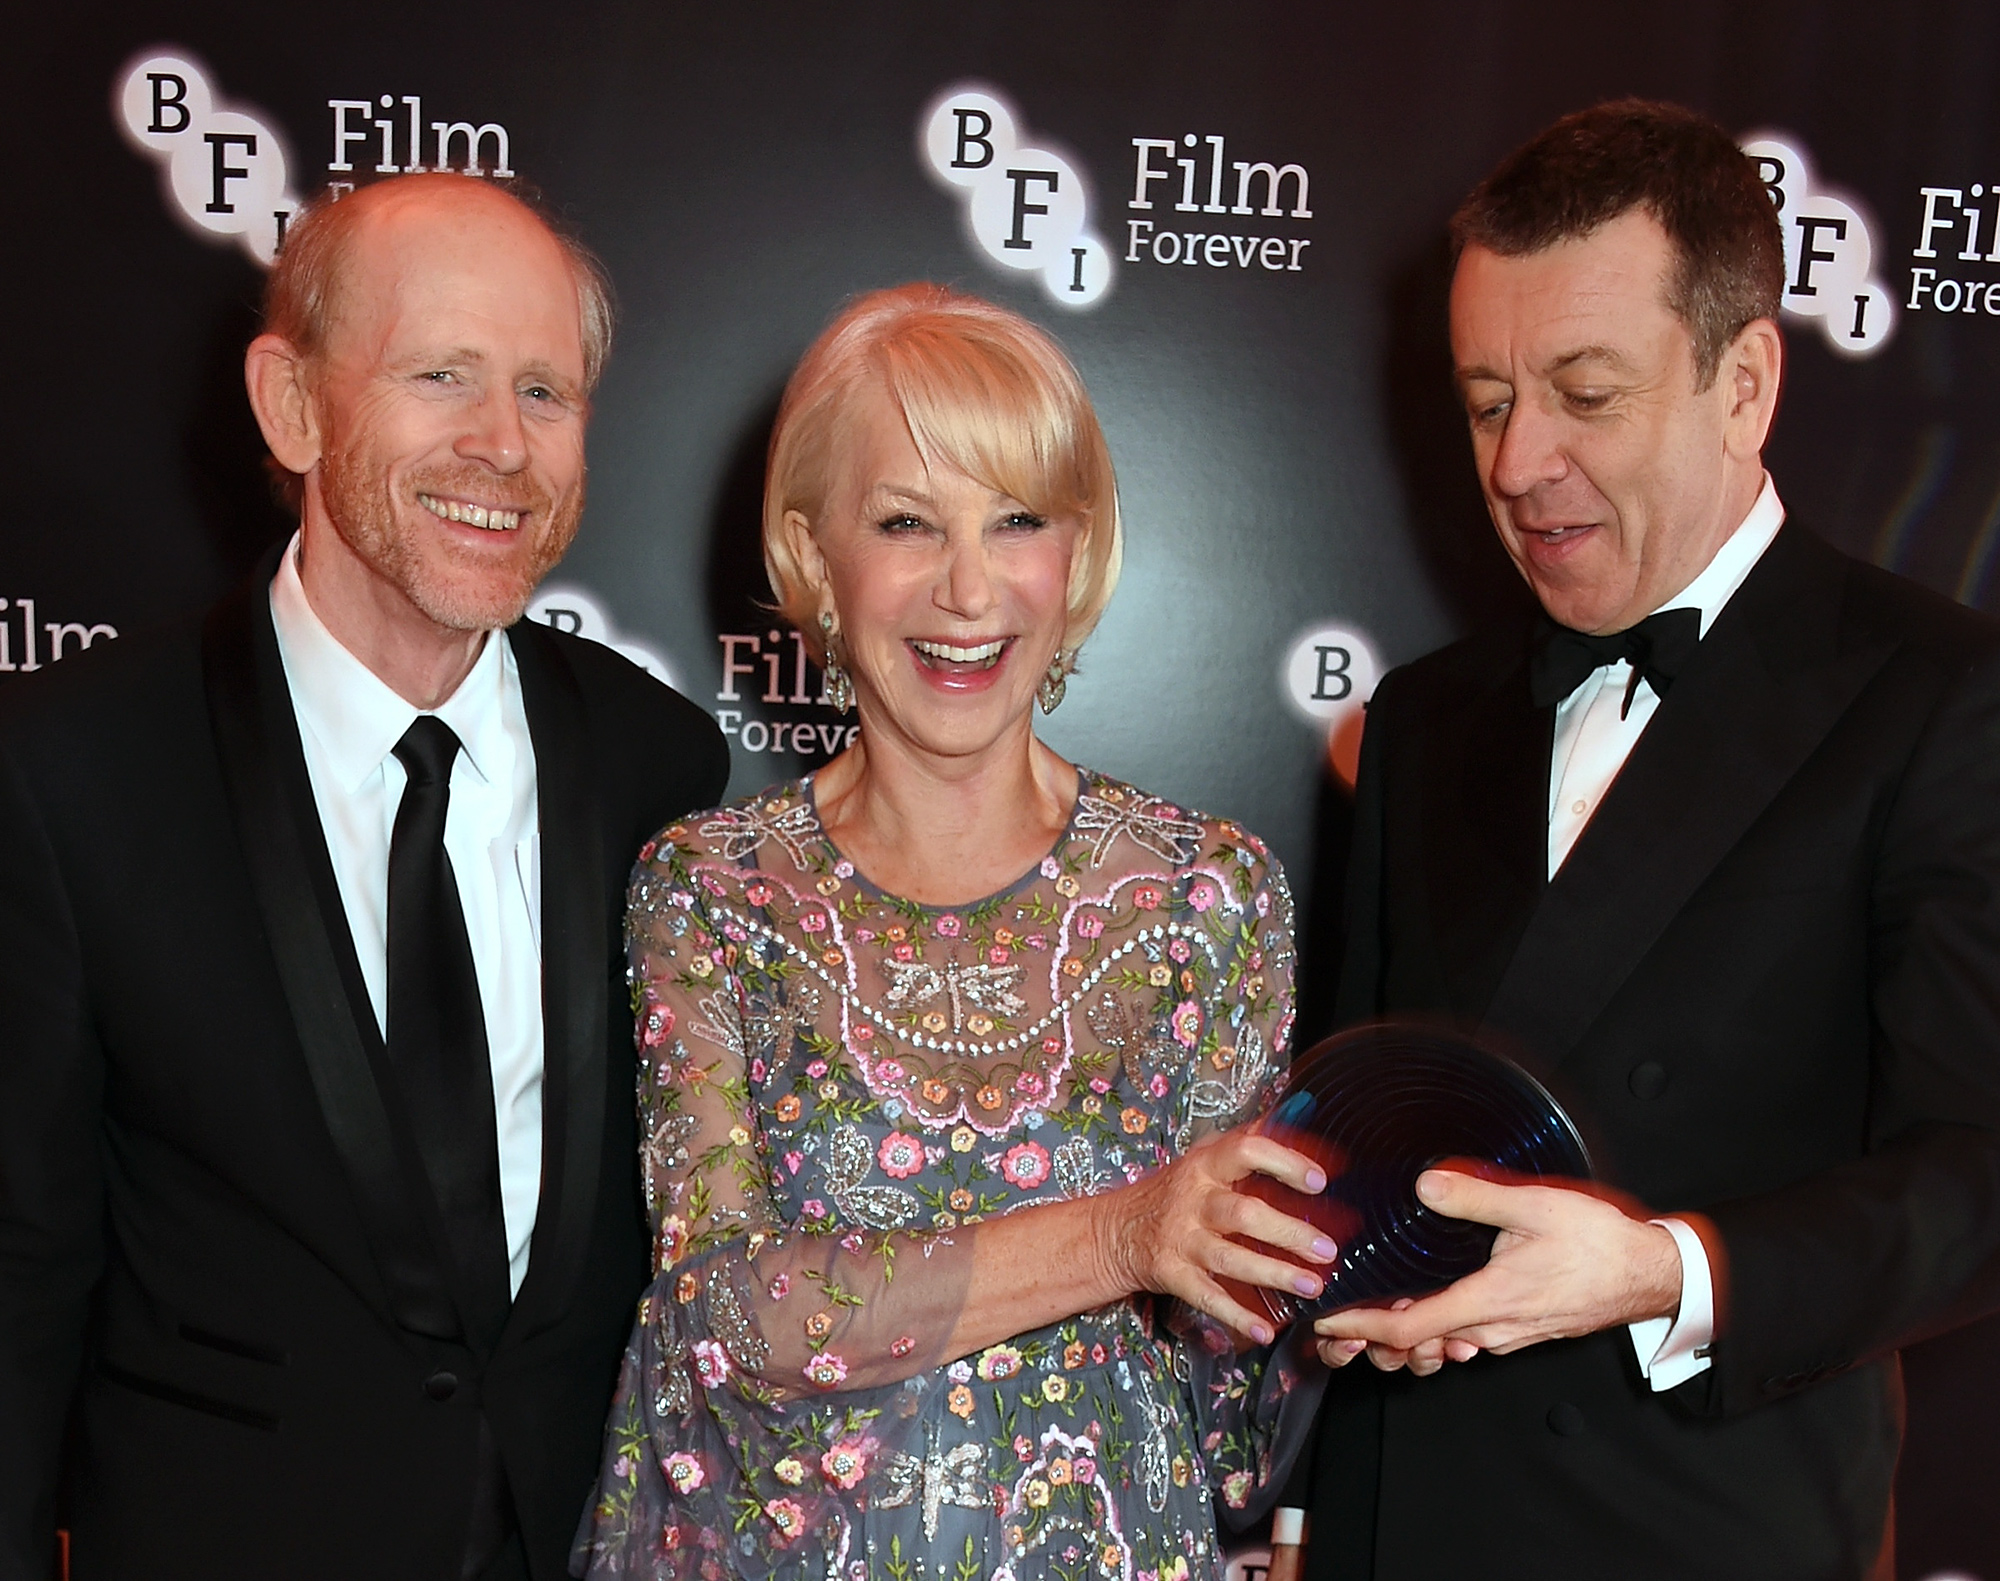 BFI Chairman's Dinner Honouring Peter Morgan With BFI Fellowship